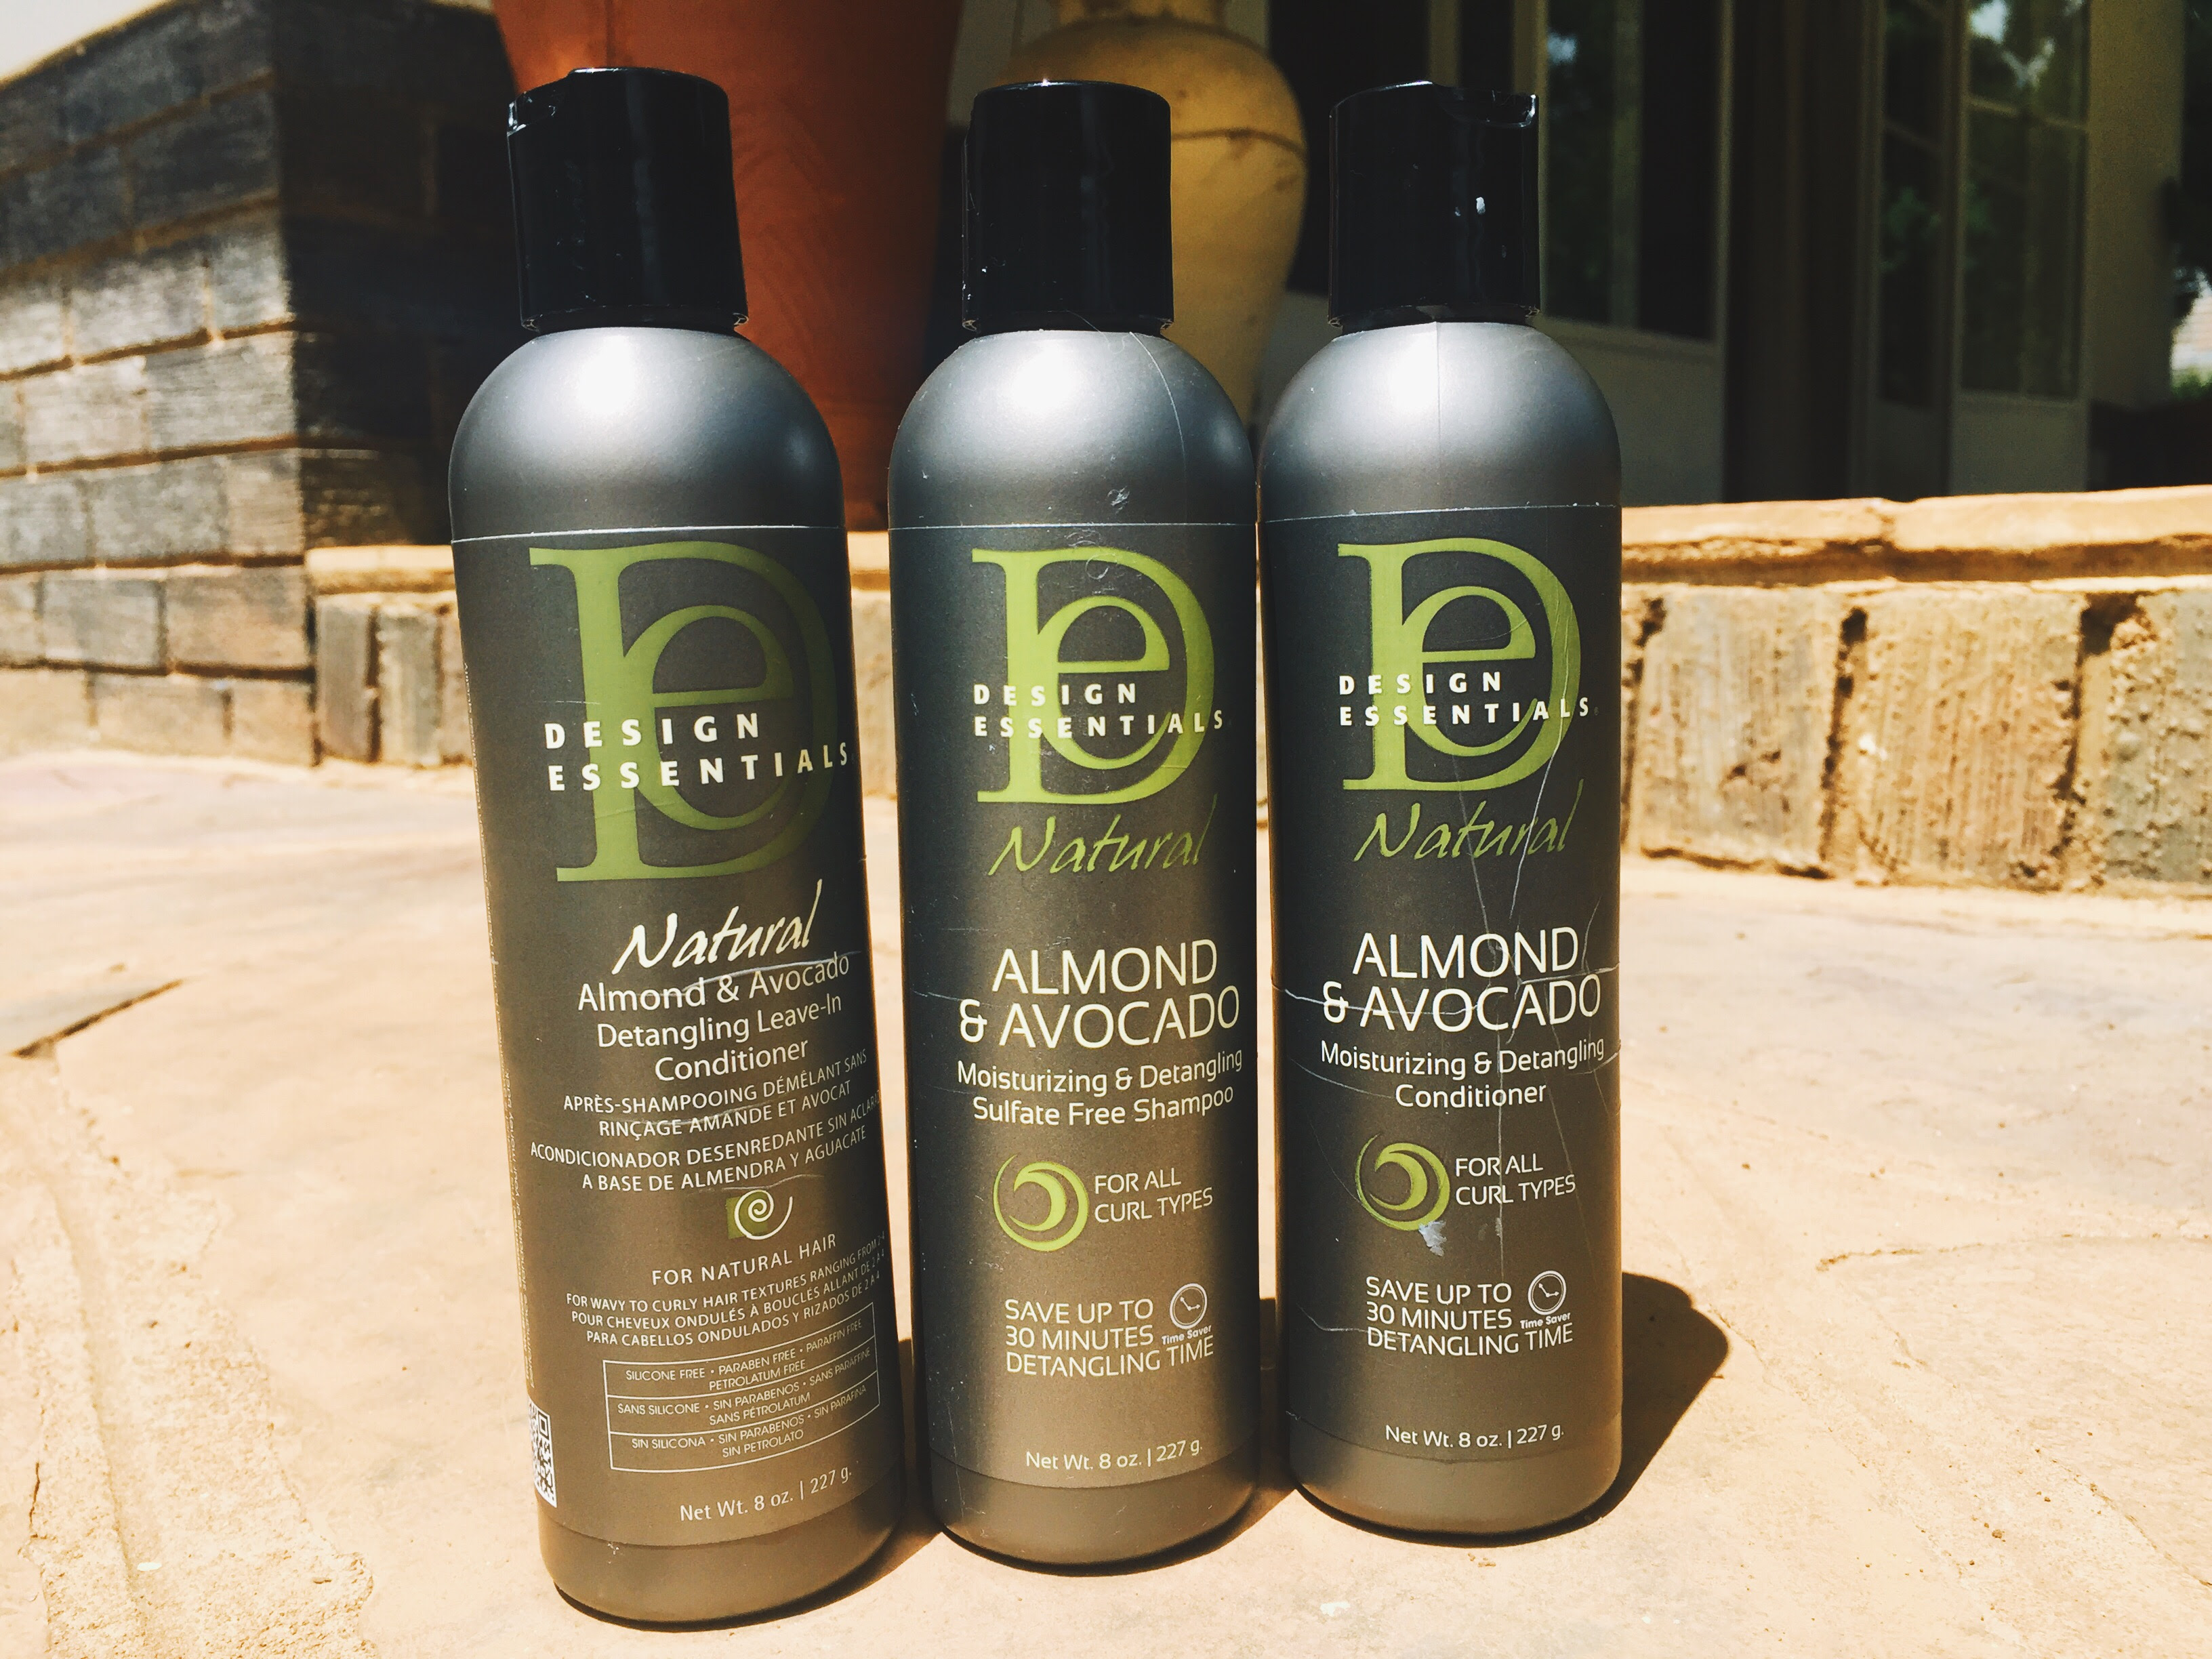 Best Design Essentials Natural Leave In Conditioner